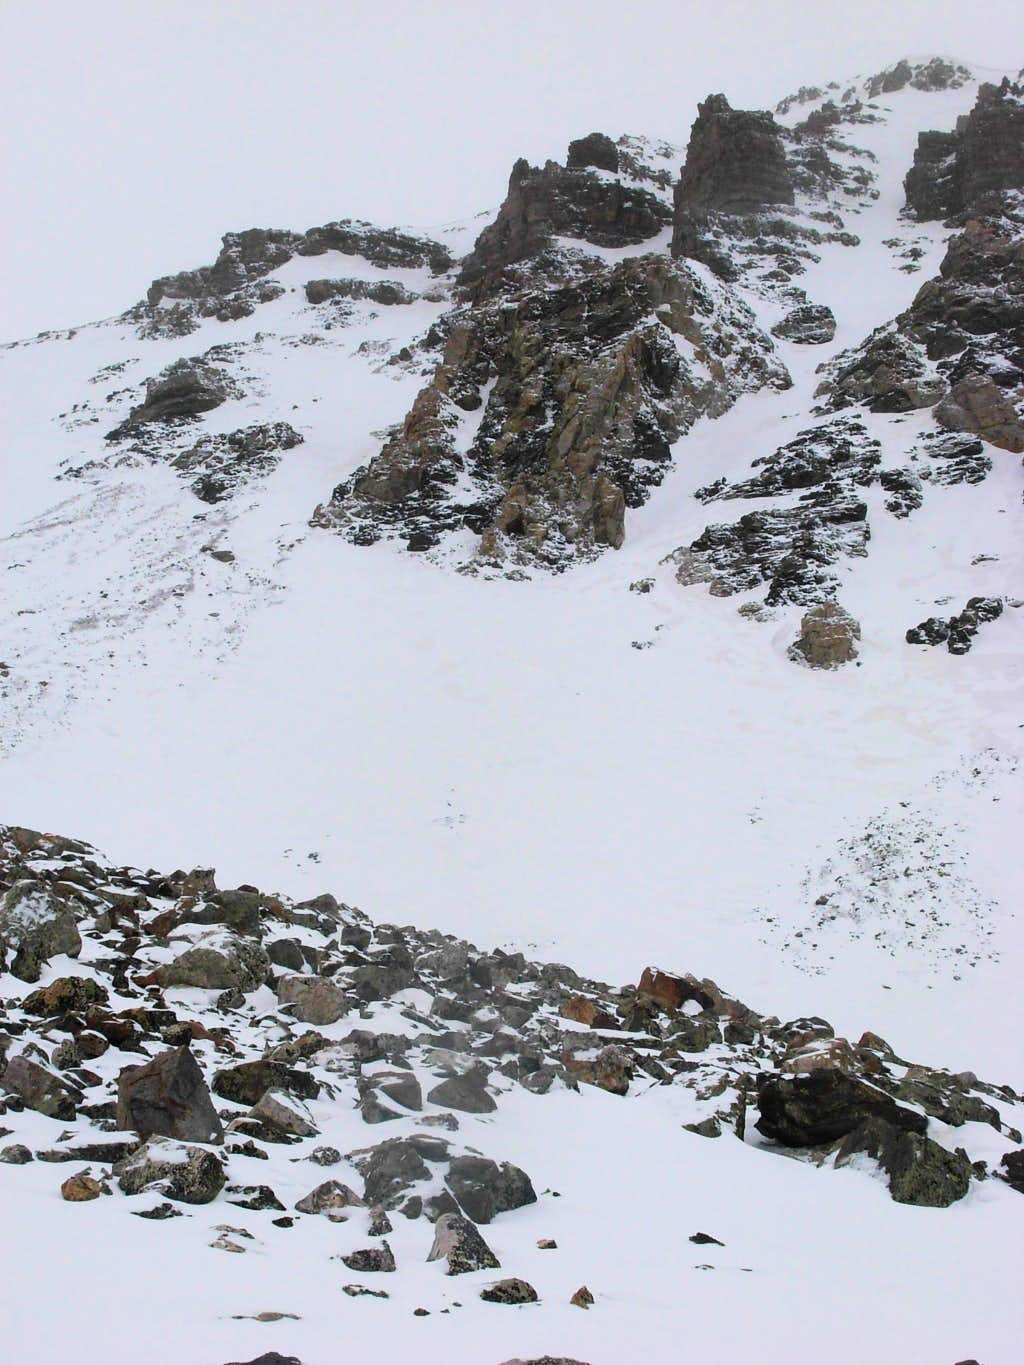 The upper headwall